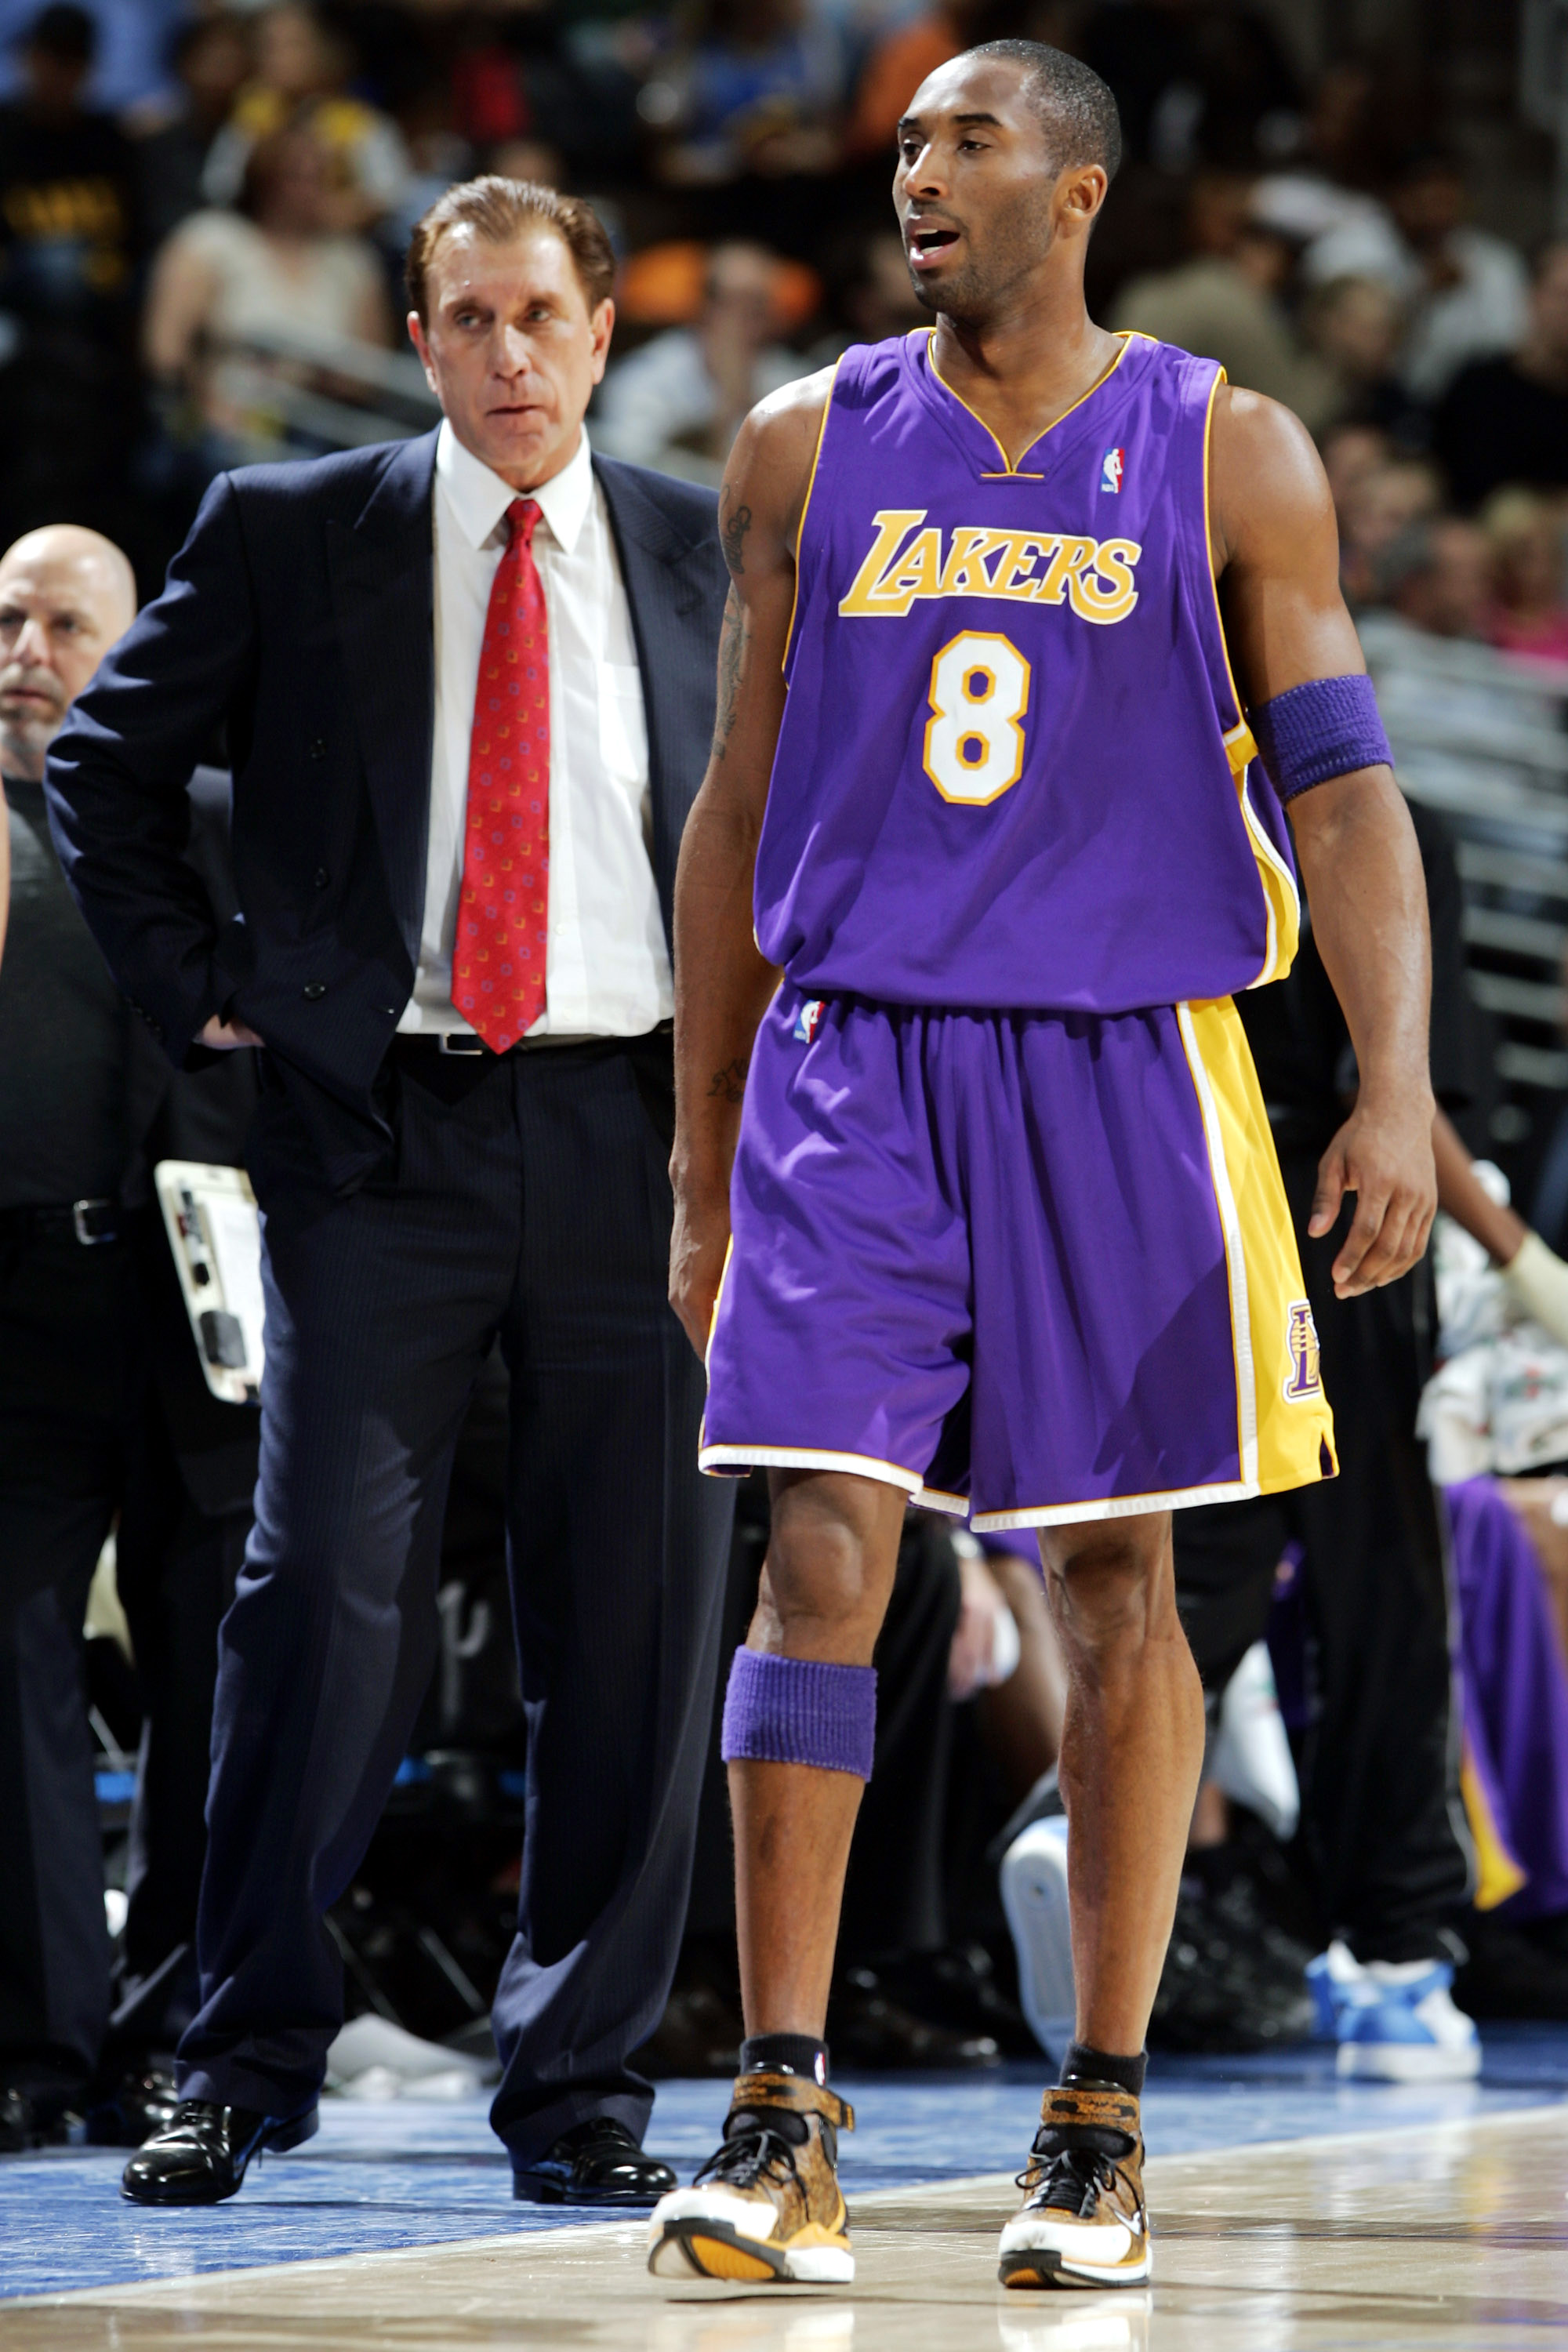 DENVER - JANUARY 12:  Kobe Bryant #8 of the Los Angeles Lakers walks back onto the court with head coach Rudy Tomjanovich behind him during the first half against the Denver Nuggets on January 12, 2005 at the Pepsi Center in Denver, Colorado. NOTE TO USER